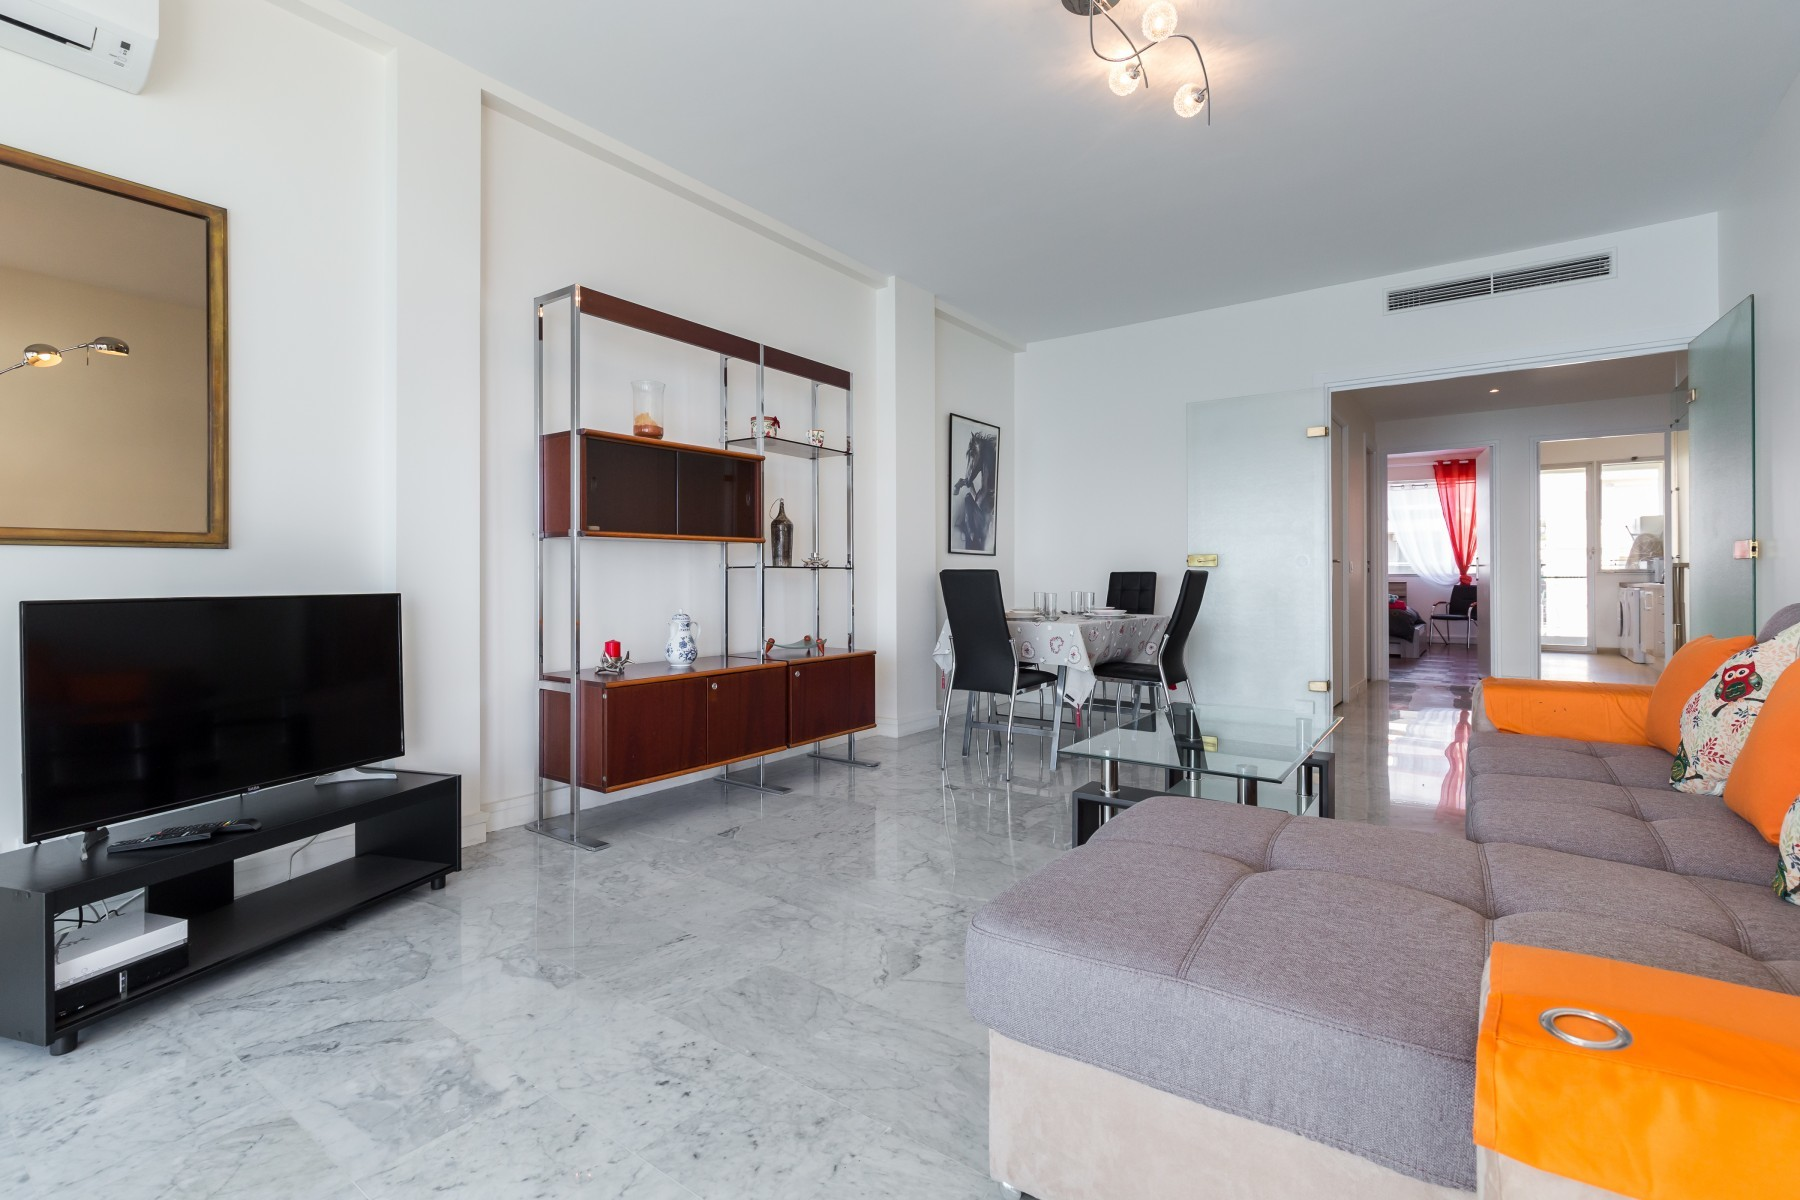 Appartements a Nice - Milord - 1 chambre - Promenade des Anglais